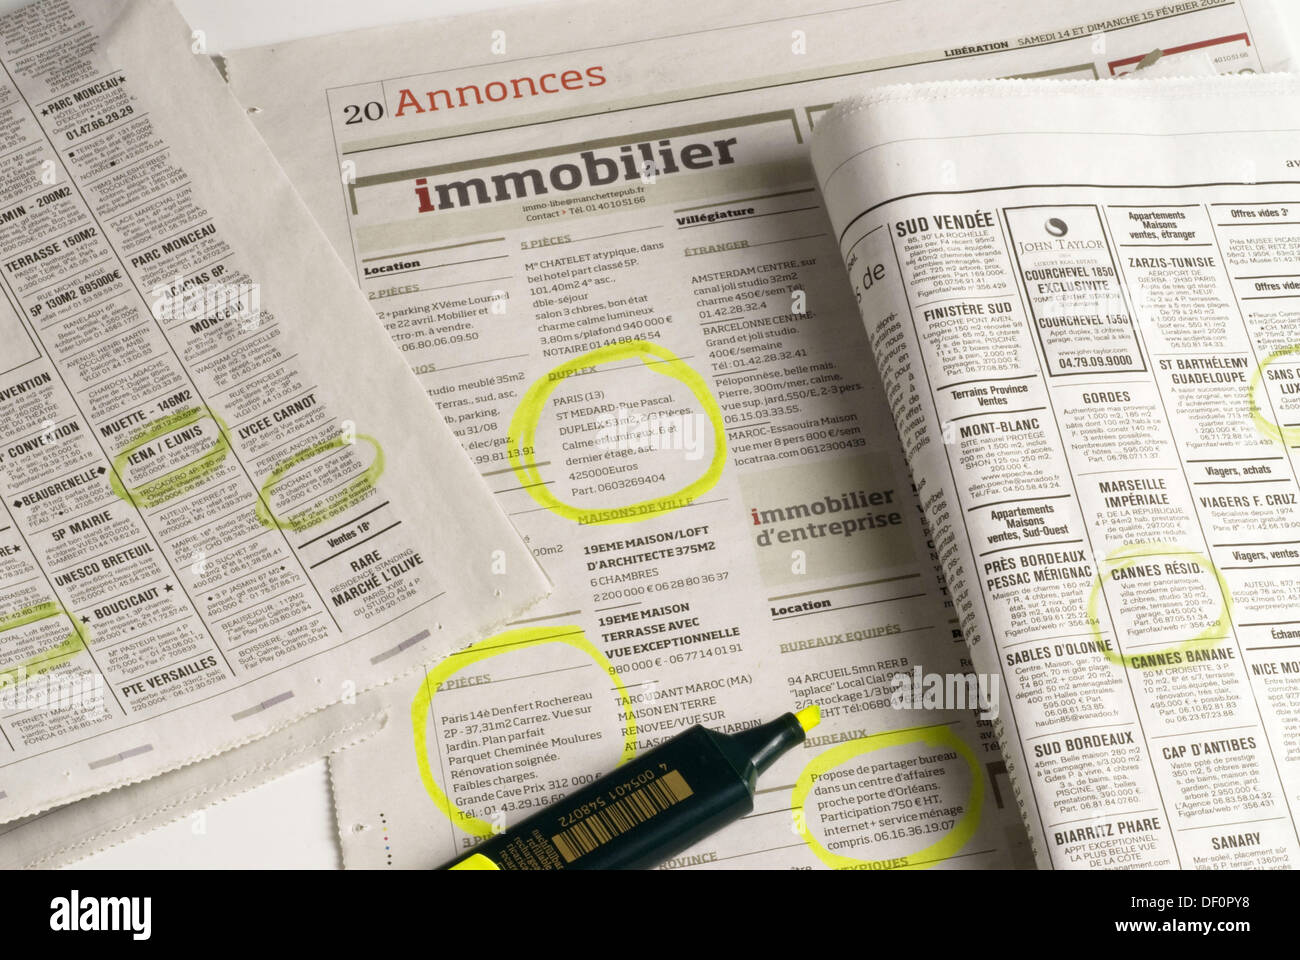 Newspapers. Classified ads. Real state. Jornaux. Annonces. Immobilier. - Stock Image